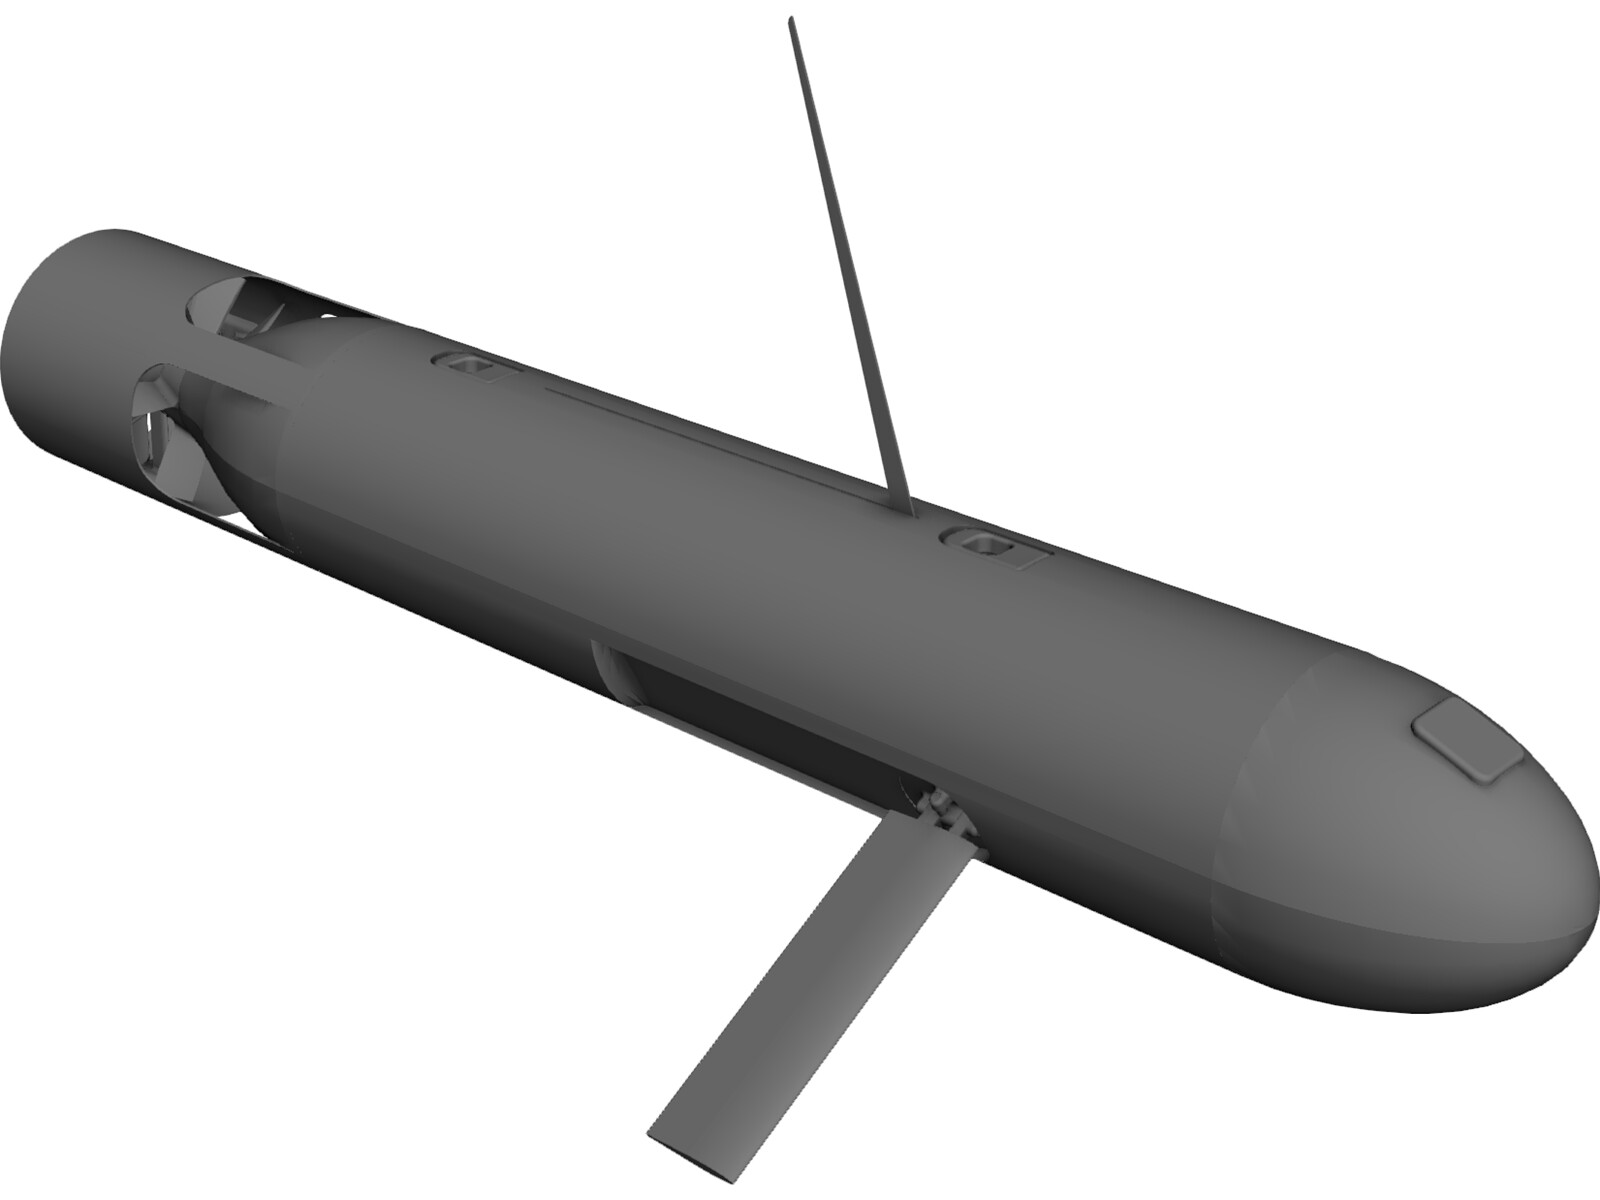 Unmanned Underwater Vehicle (UUV)